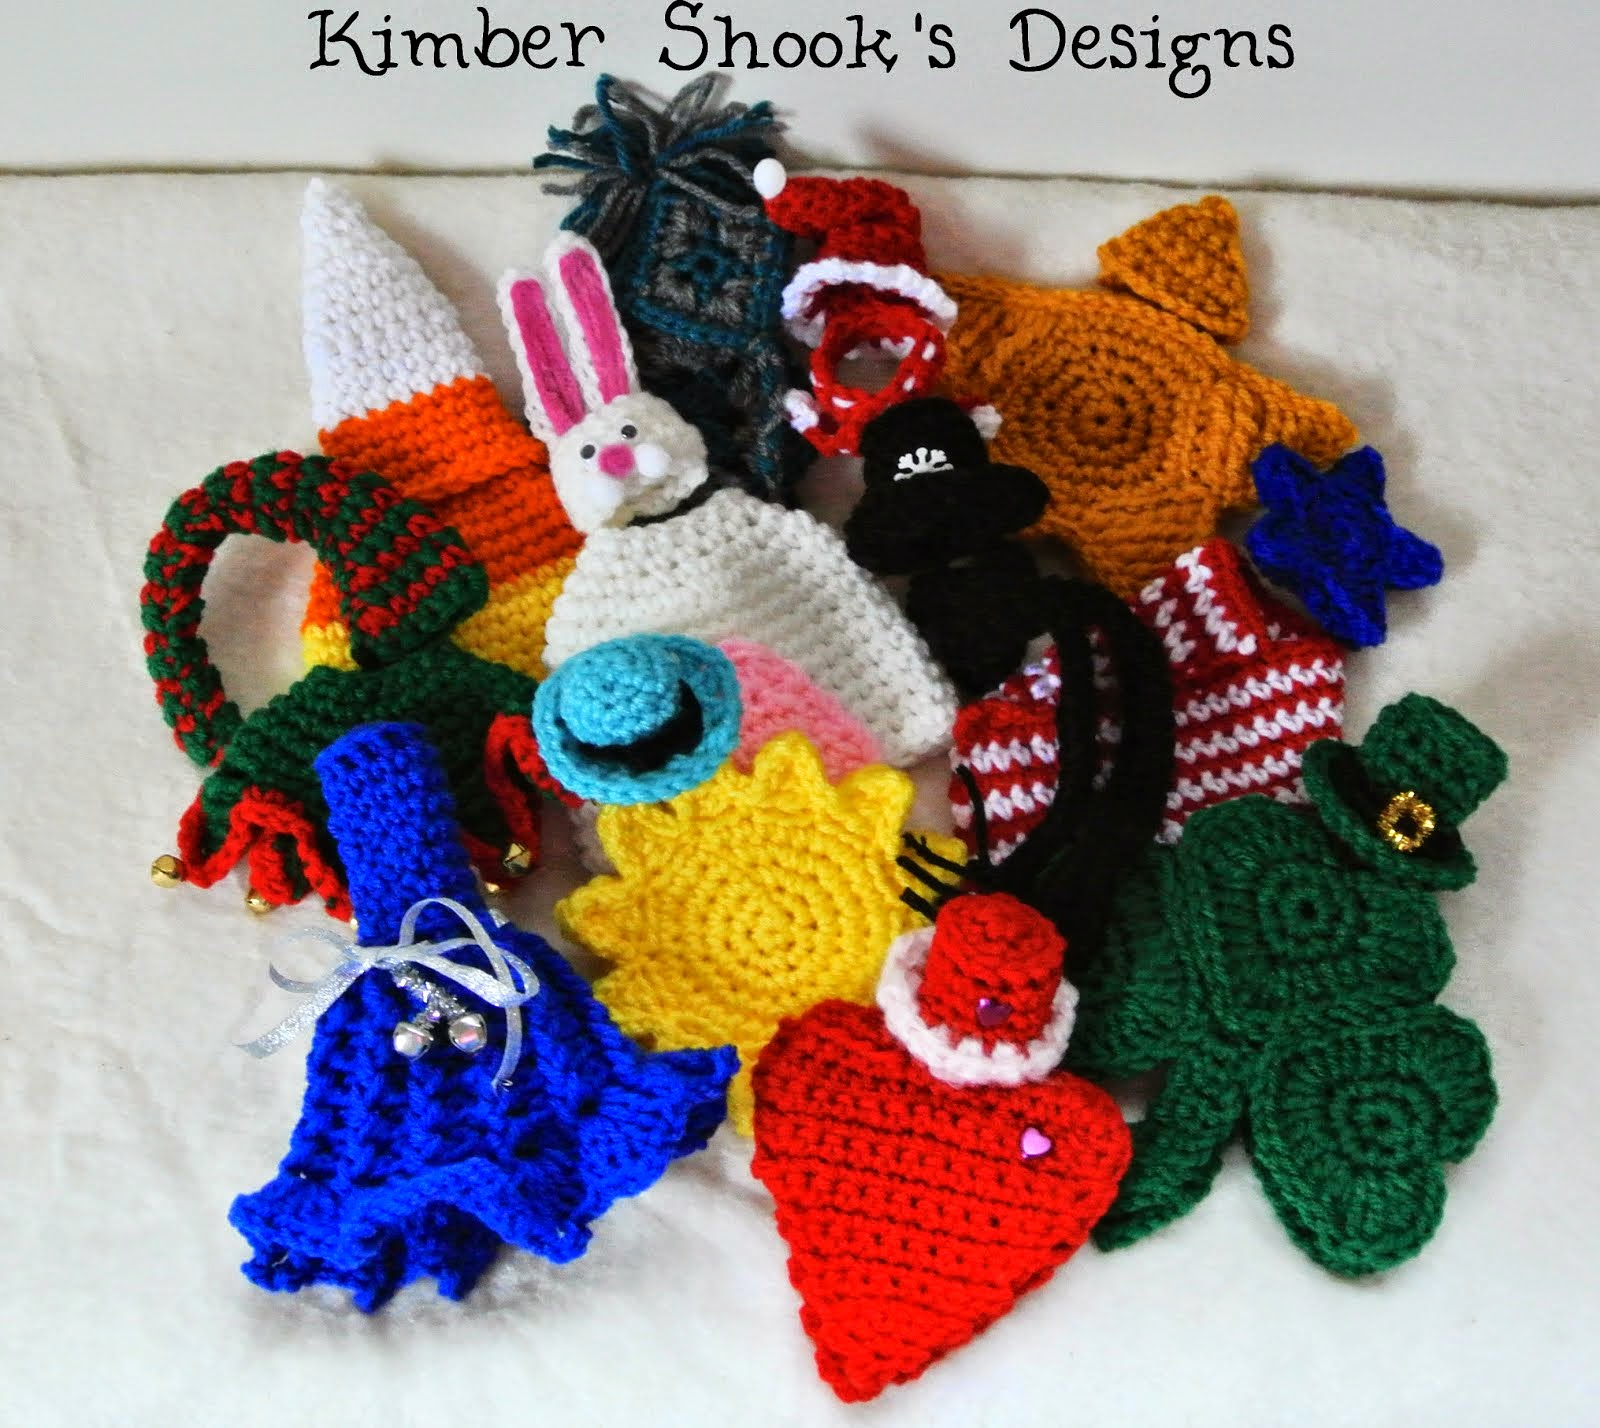 Crocheted Cozies on Etsy!